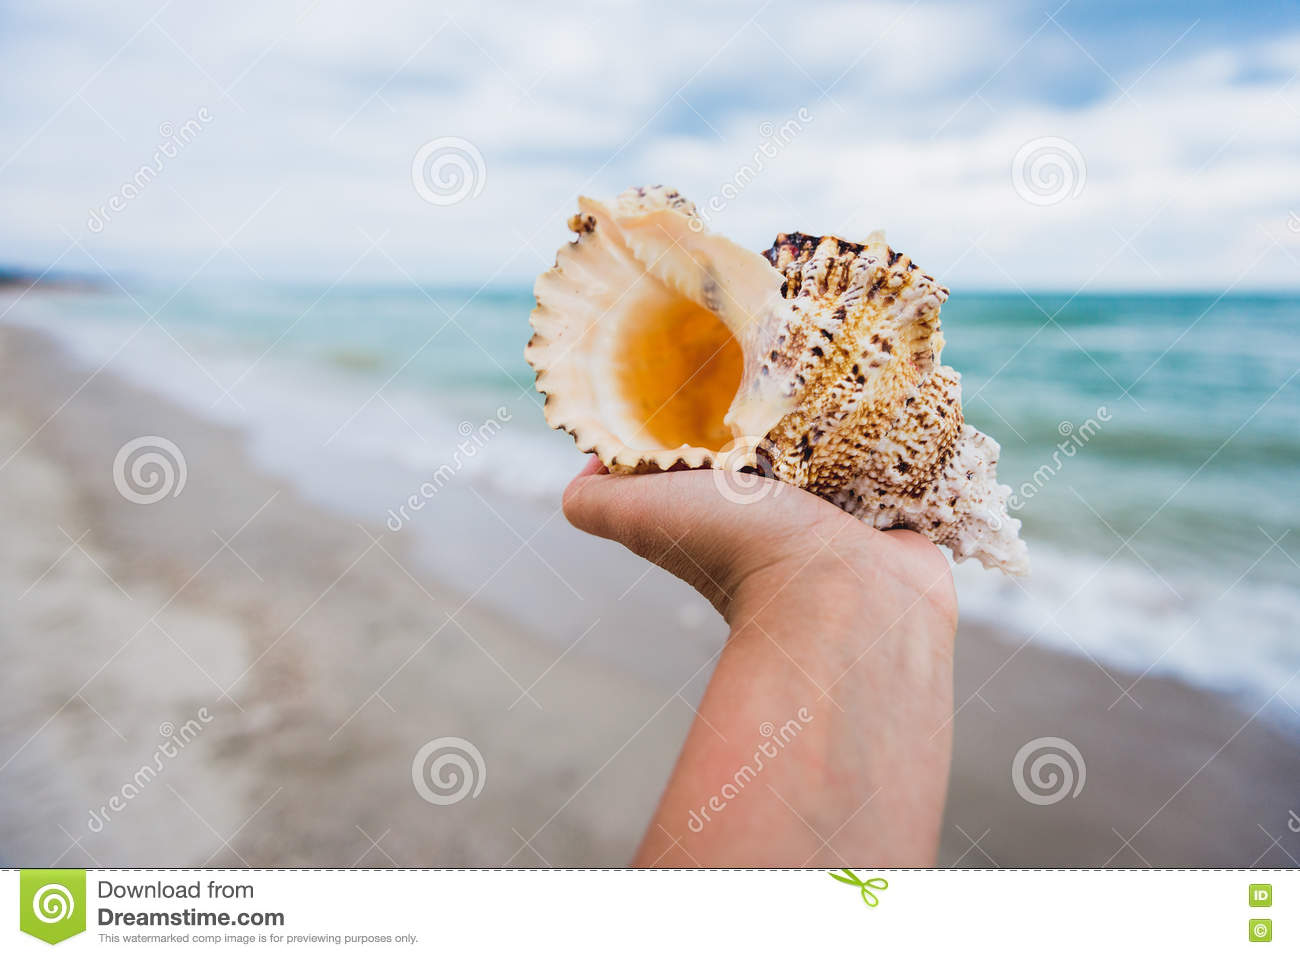 A hand holding a large seashell on tropical beach background